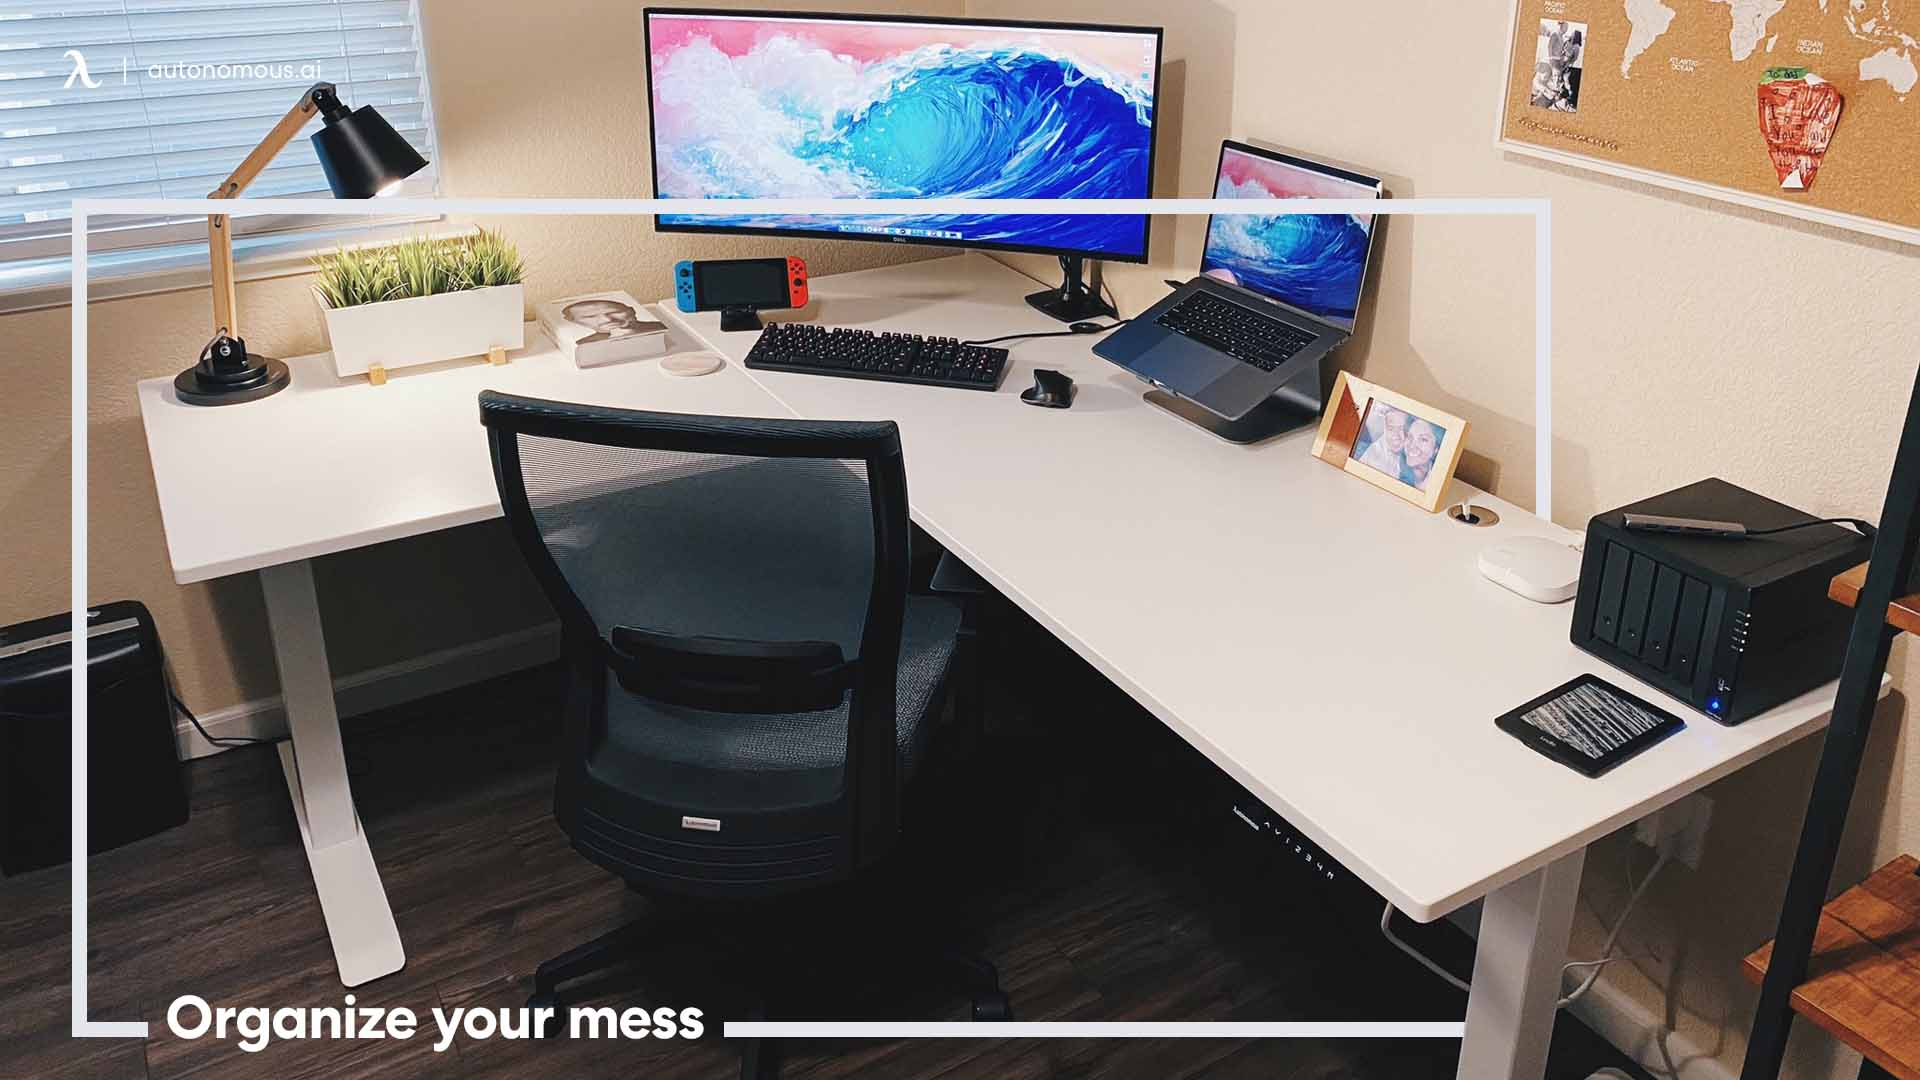 Know how to organize your work desk for productivity